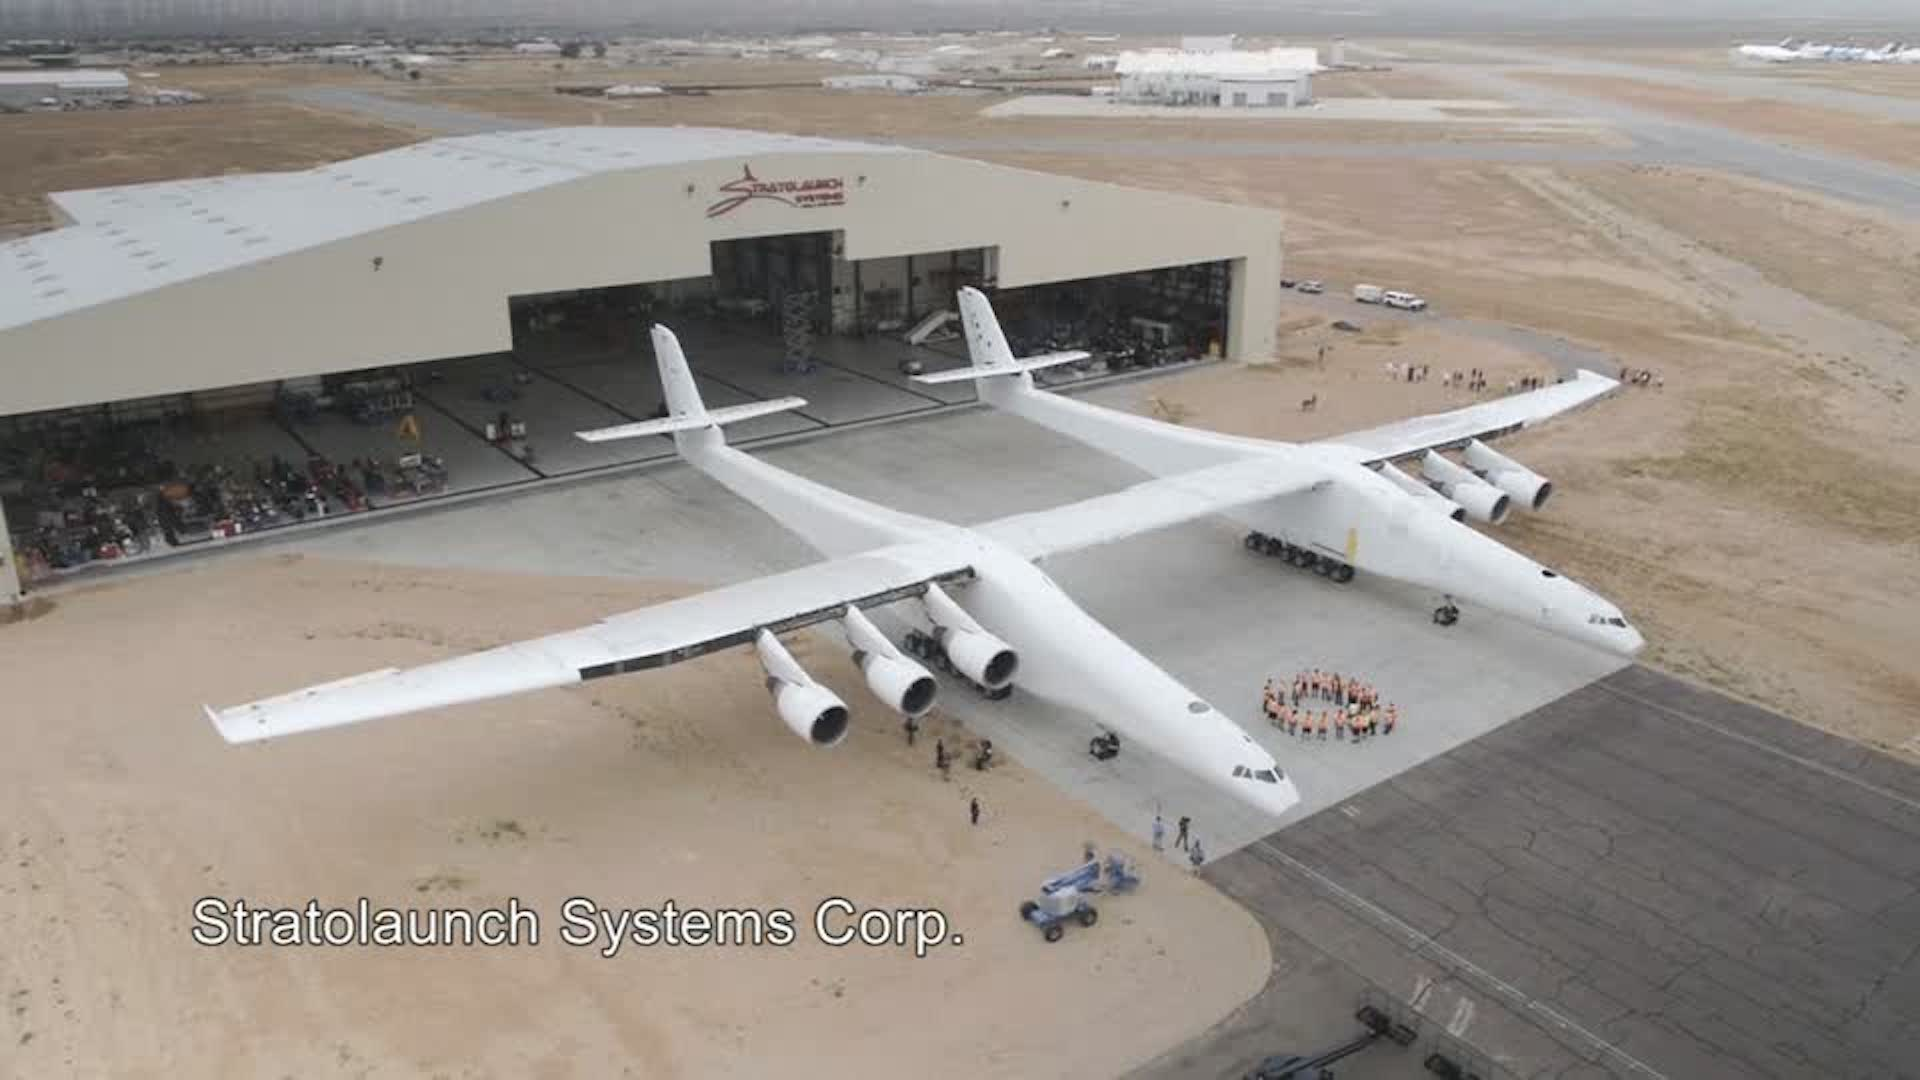 Paul Allen just rolled out the world's largest airplane, and he is ready to take on the rocketmakers